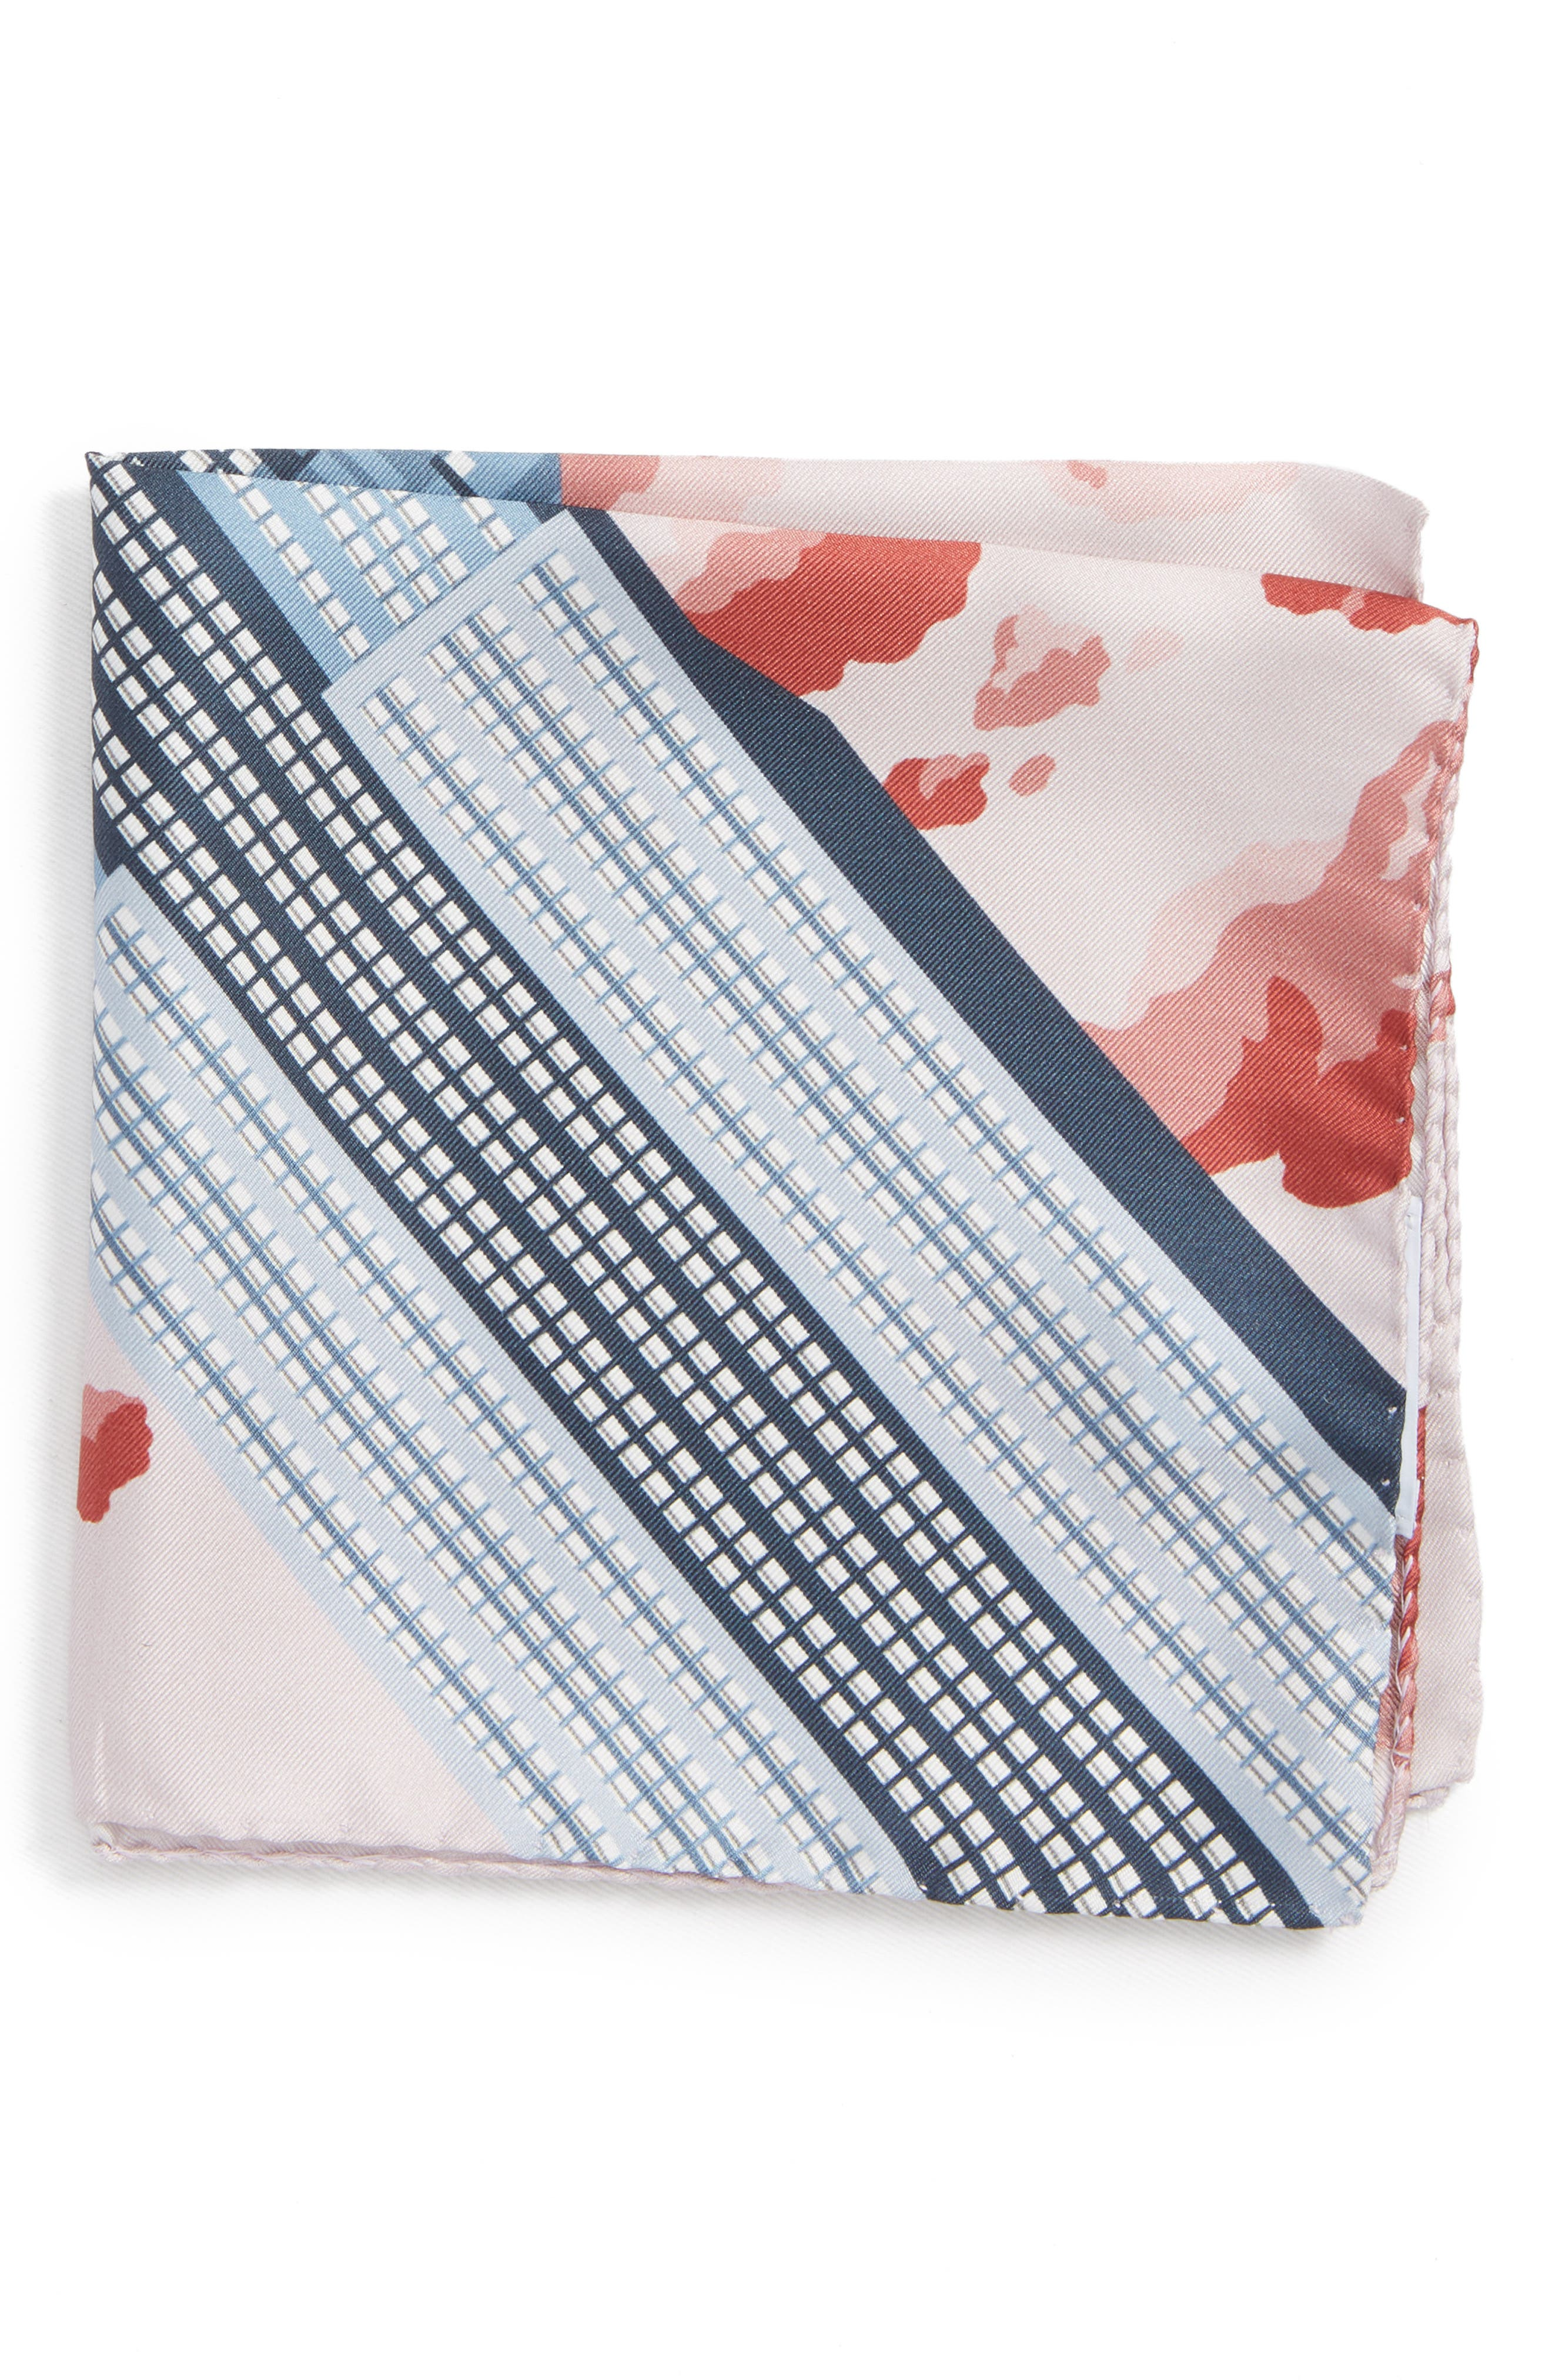 Empire State Building Silk Pocket Square,                             Main thumbnail 1, color,                             BLUE